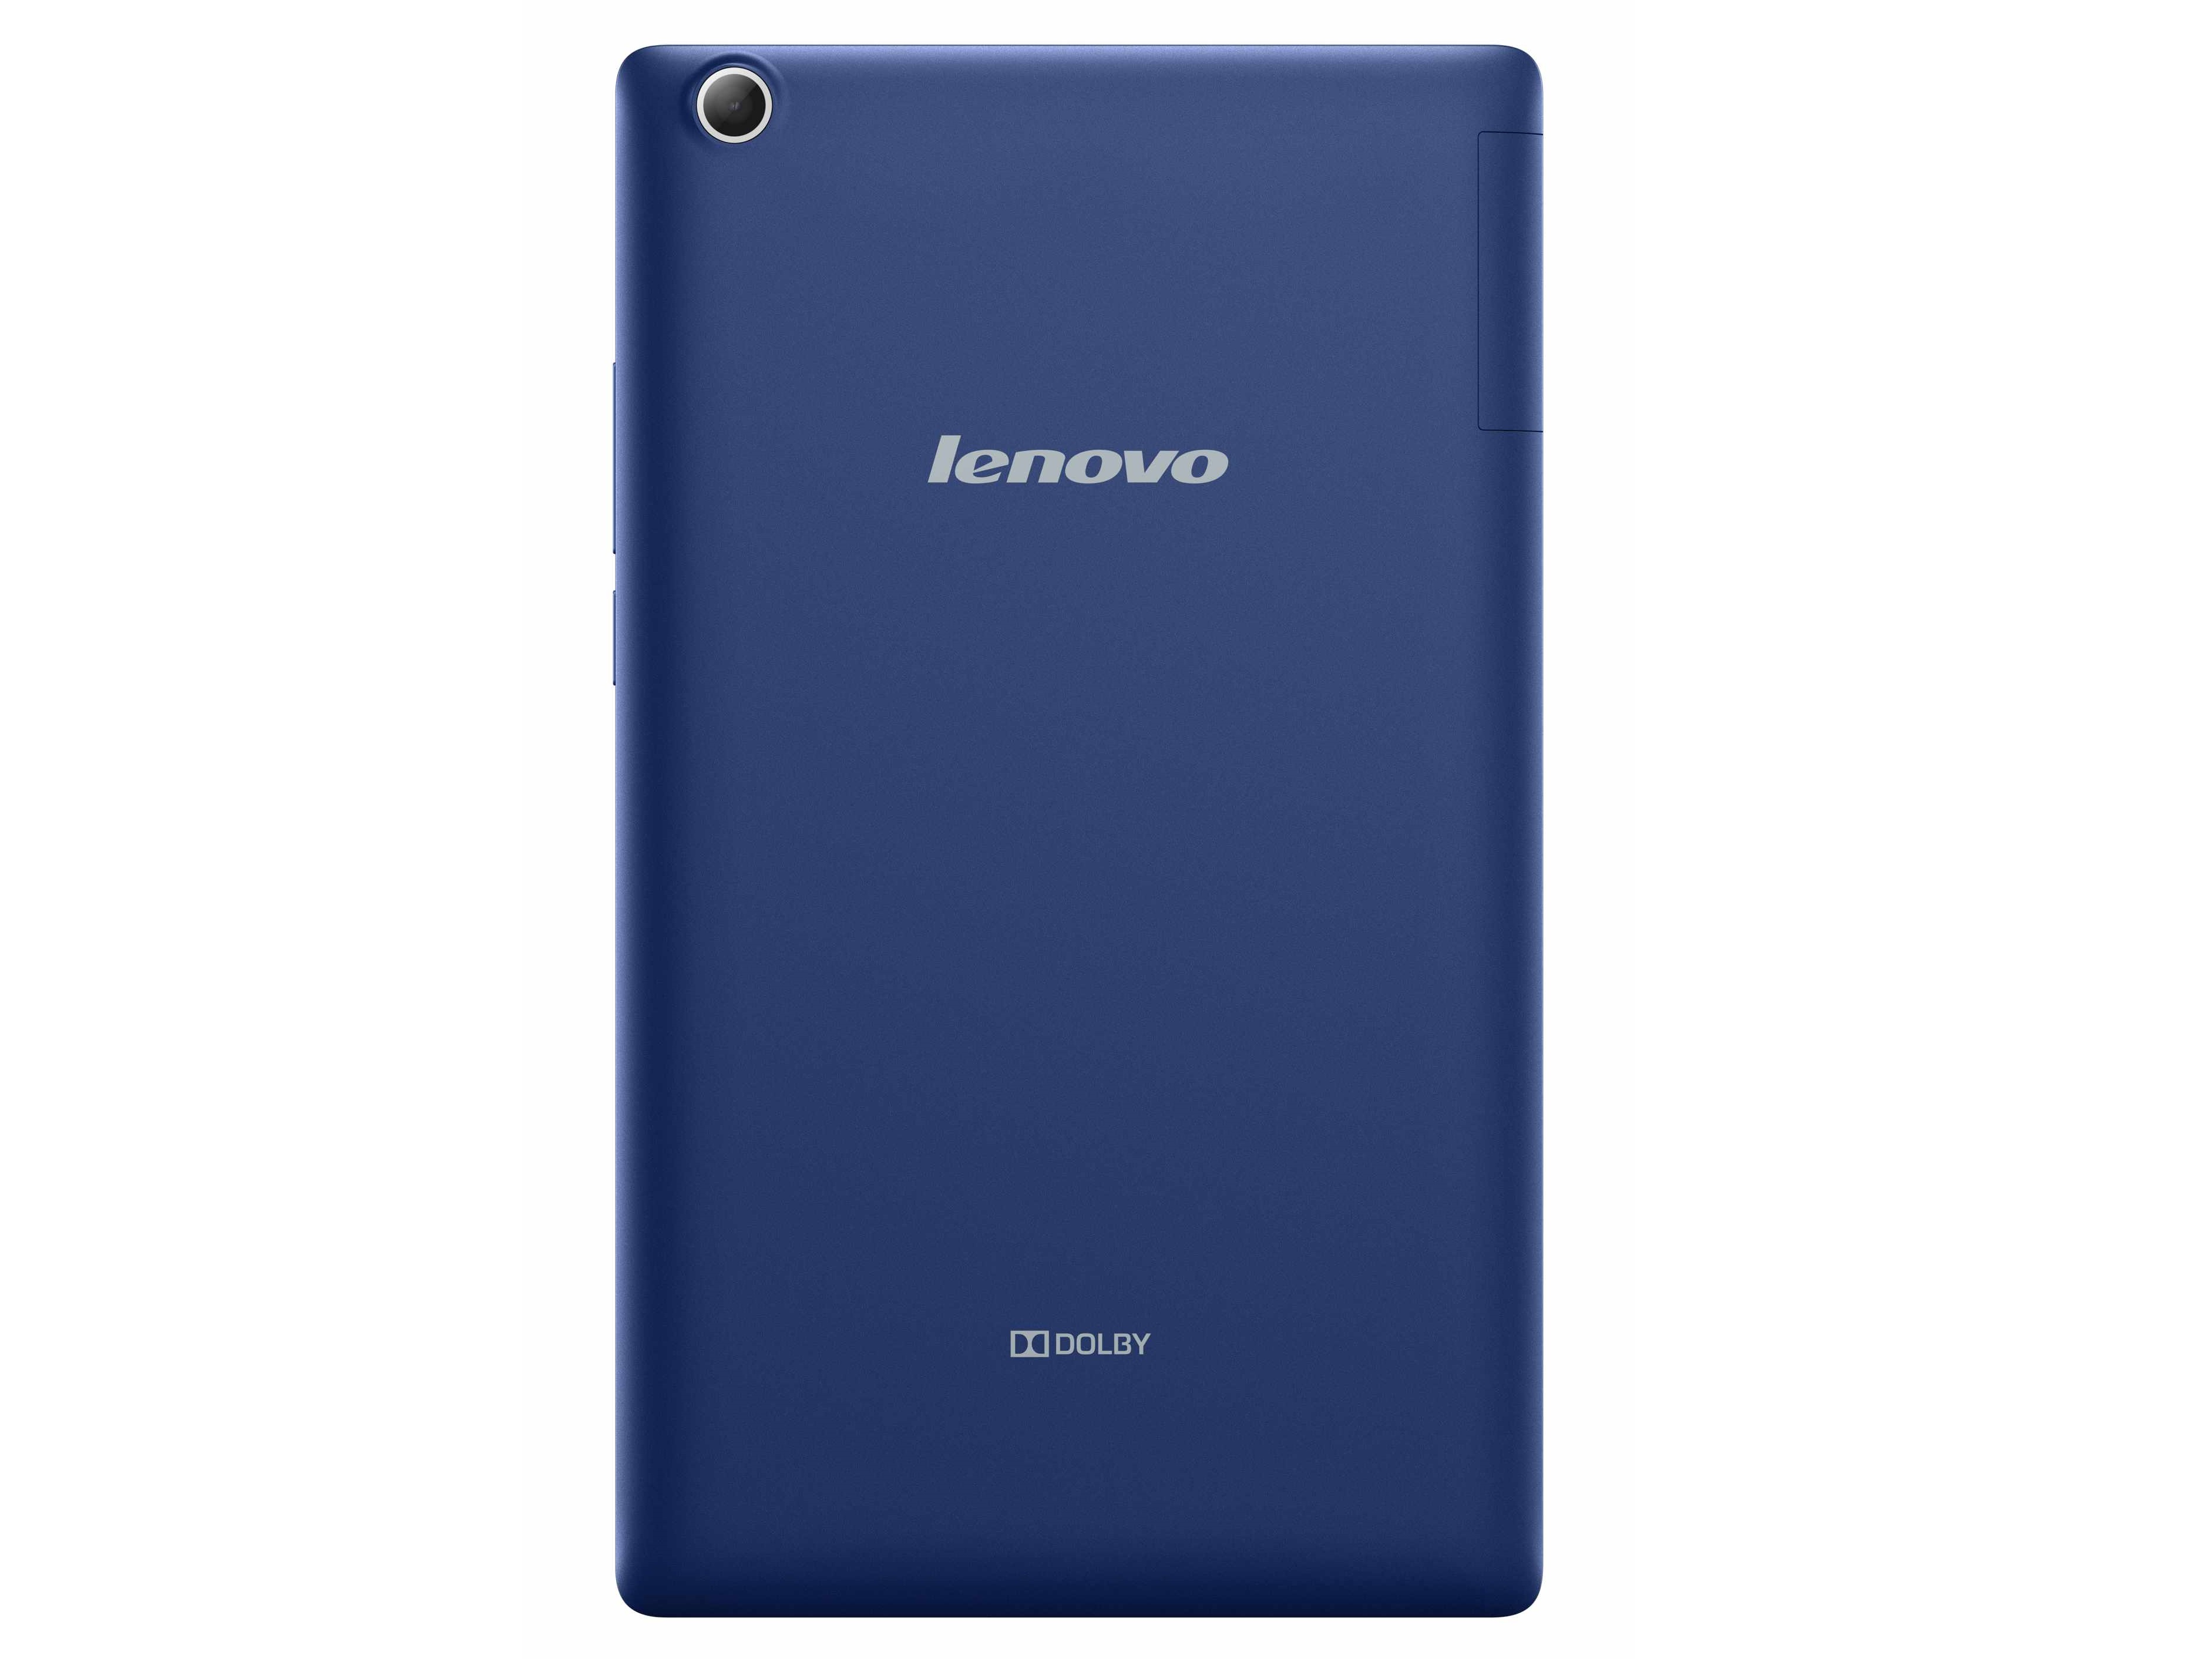 Lenovo-TAB-2-A8-images-and-specs